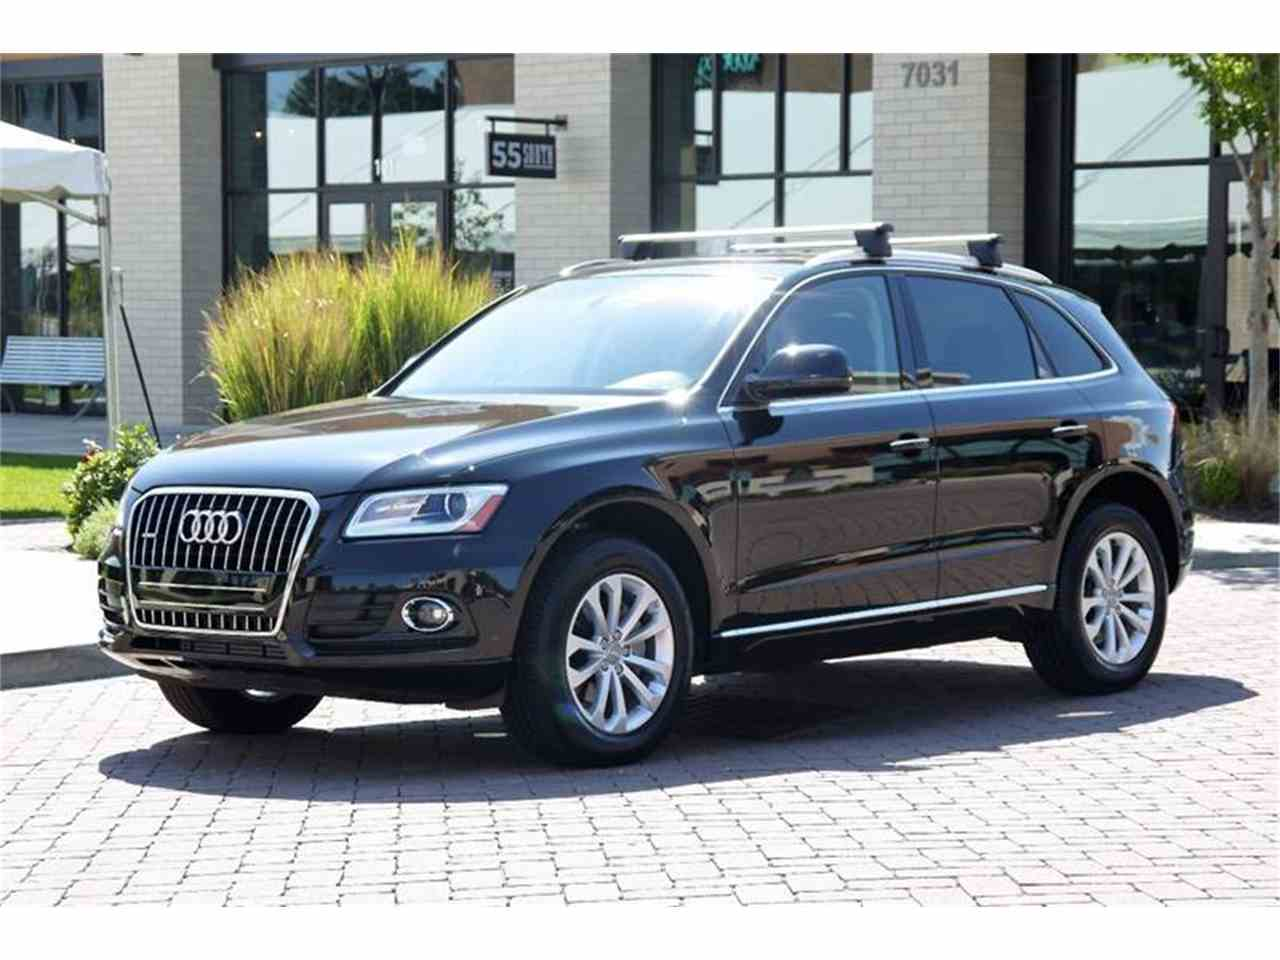 Large Picture of 2016 Audi Q5 located in Brentwood Tennessee - $42,800.00 Offered by Arde Motorcars - M2NC